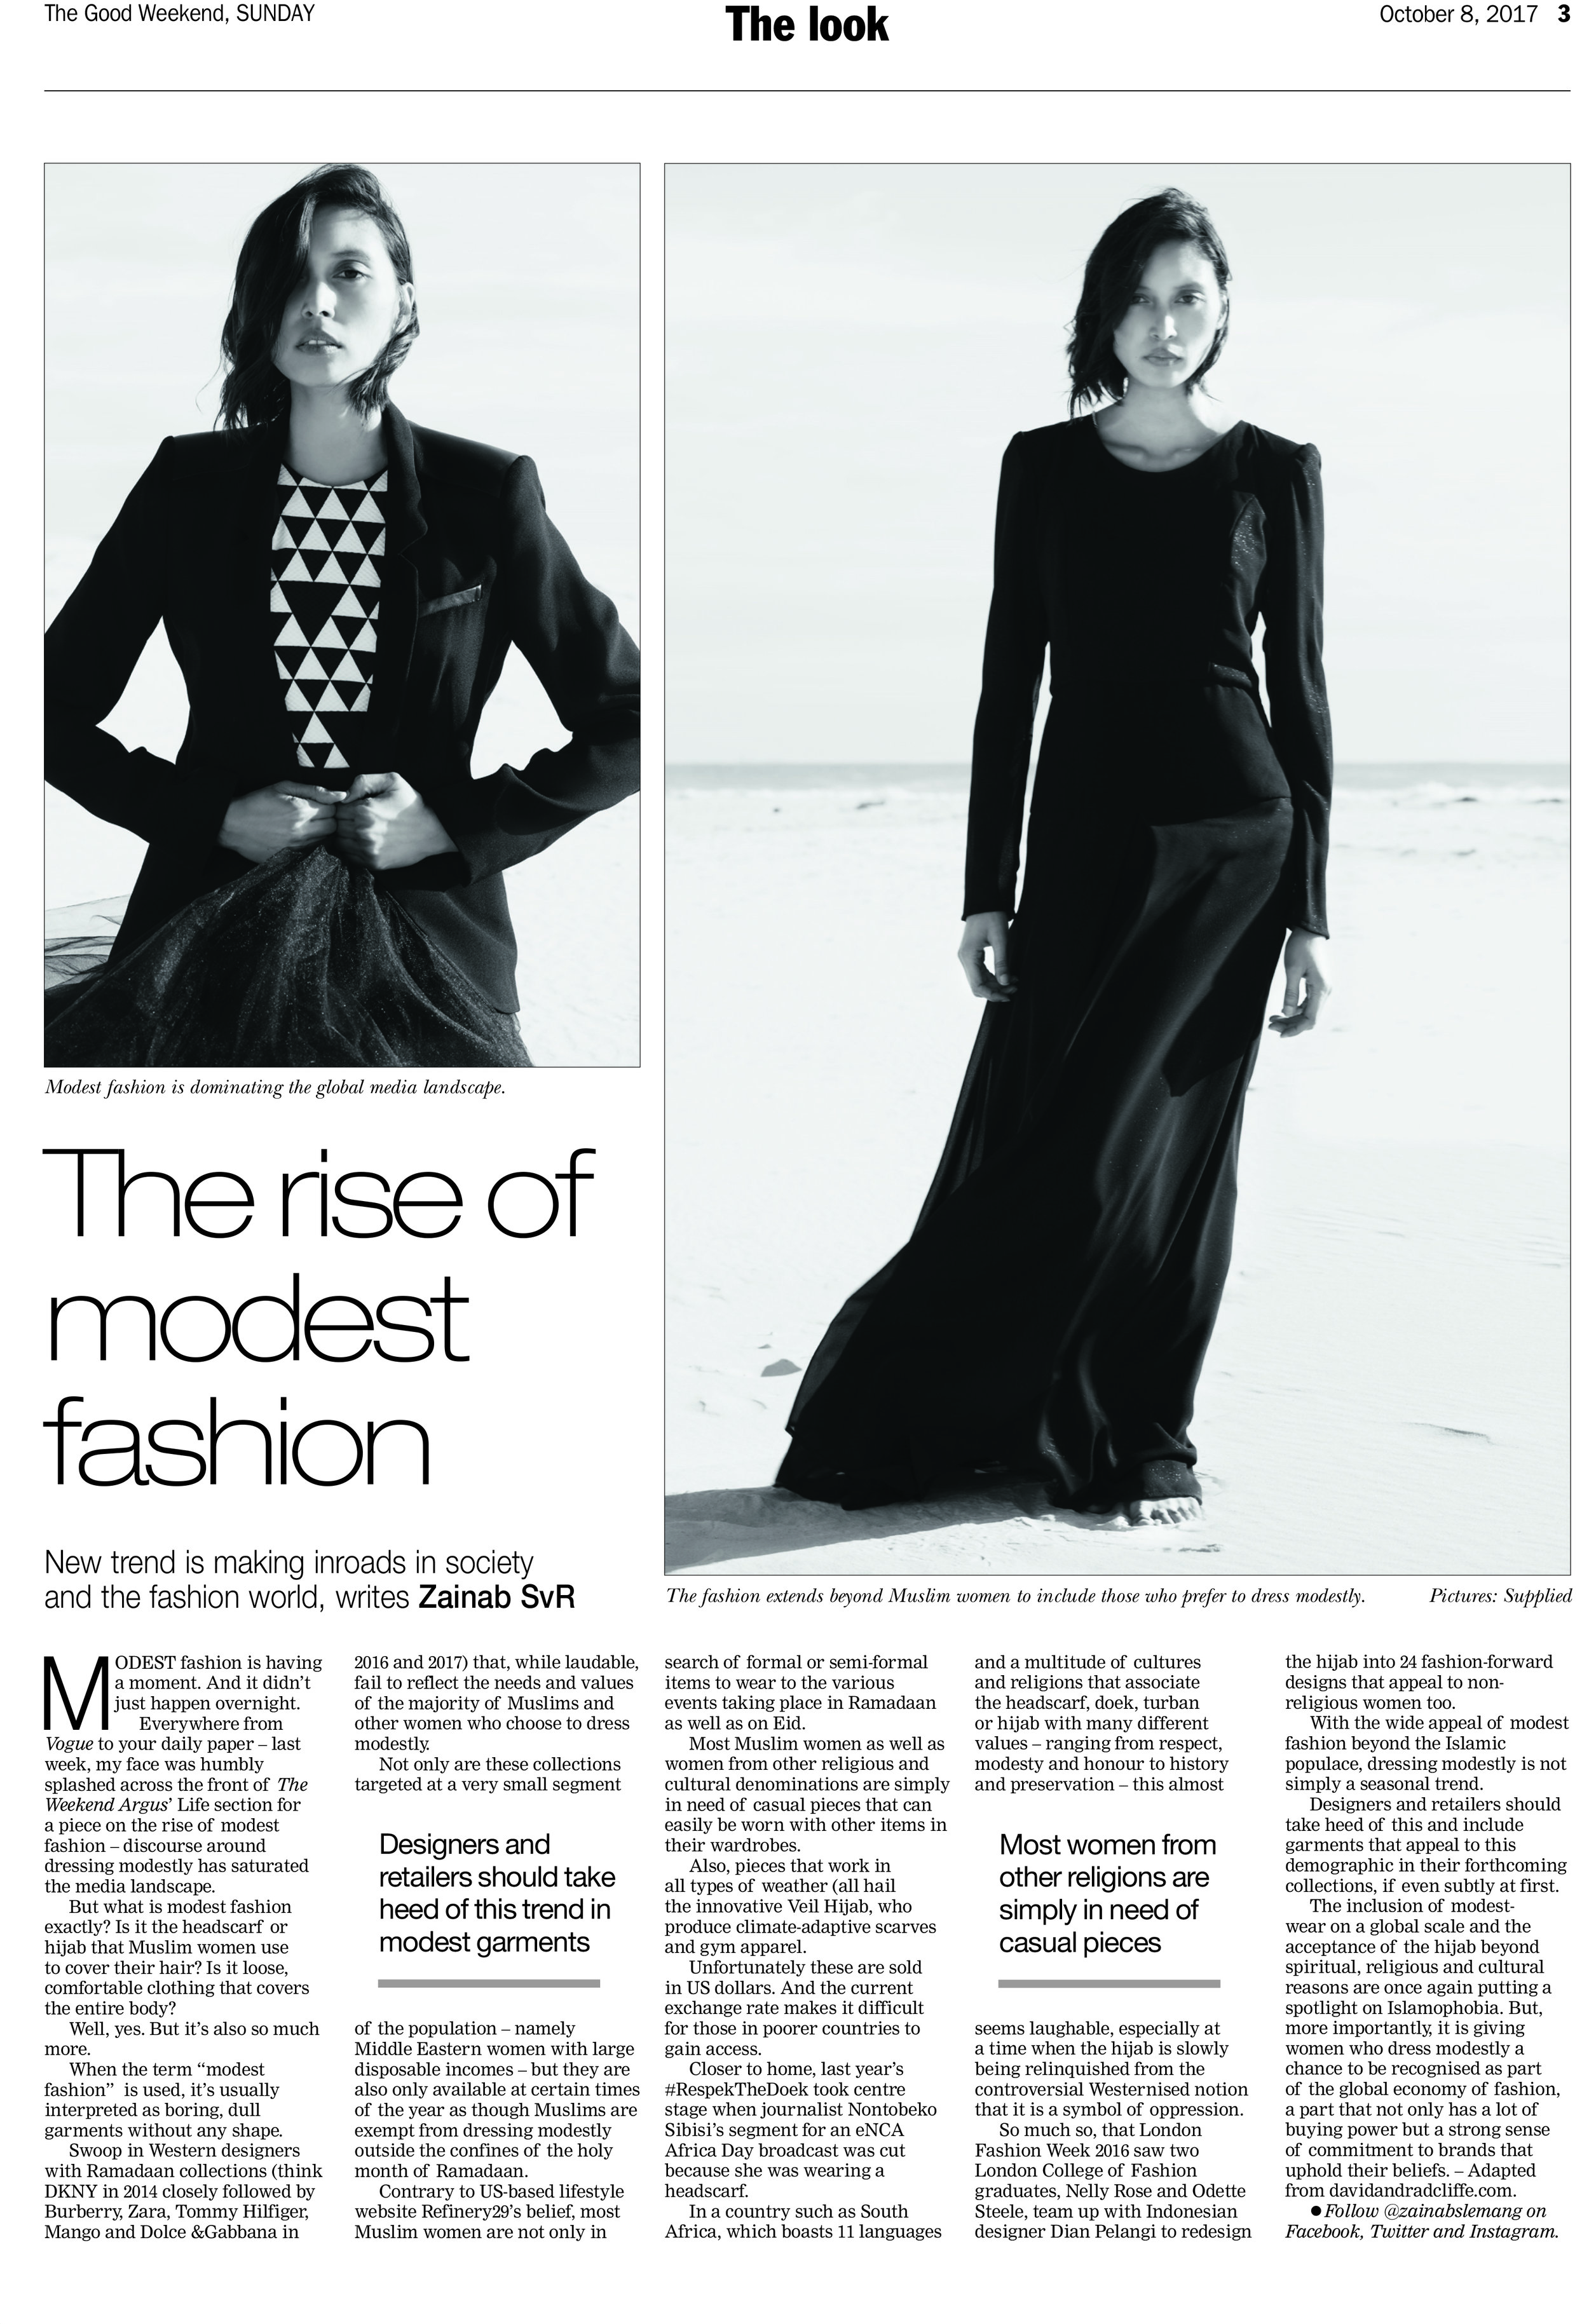 David & Radcliffe –Words – The rise of modest fashion